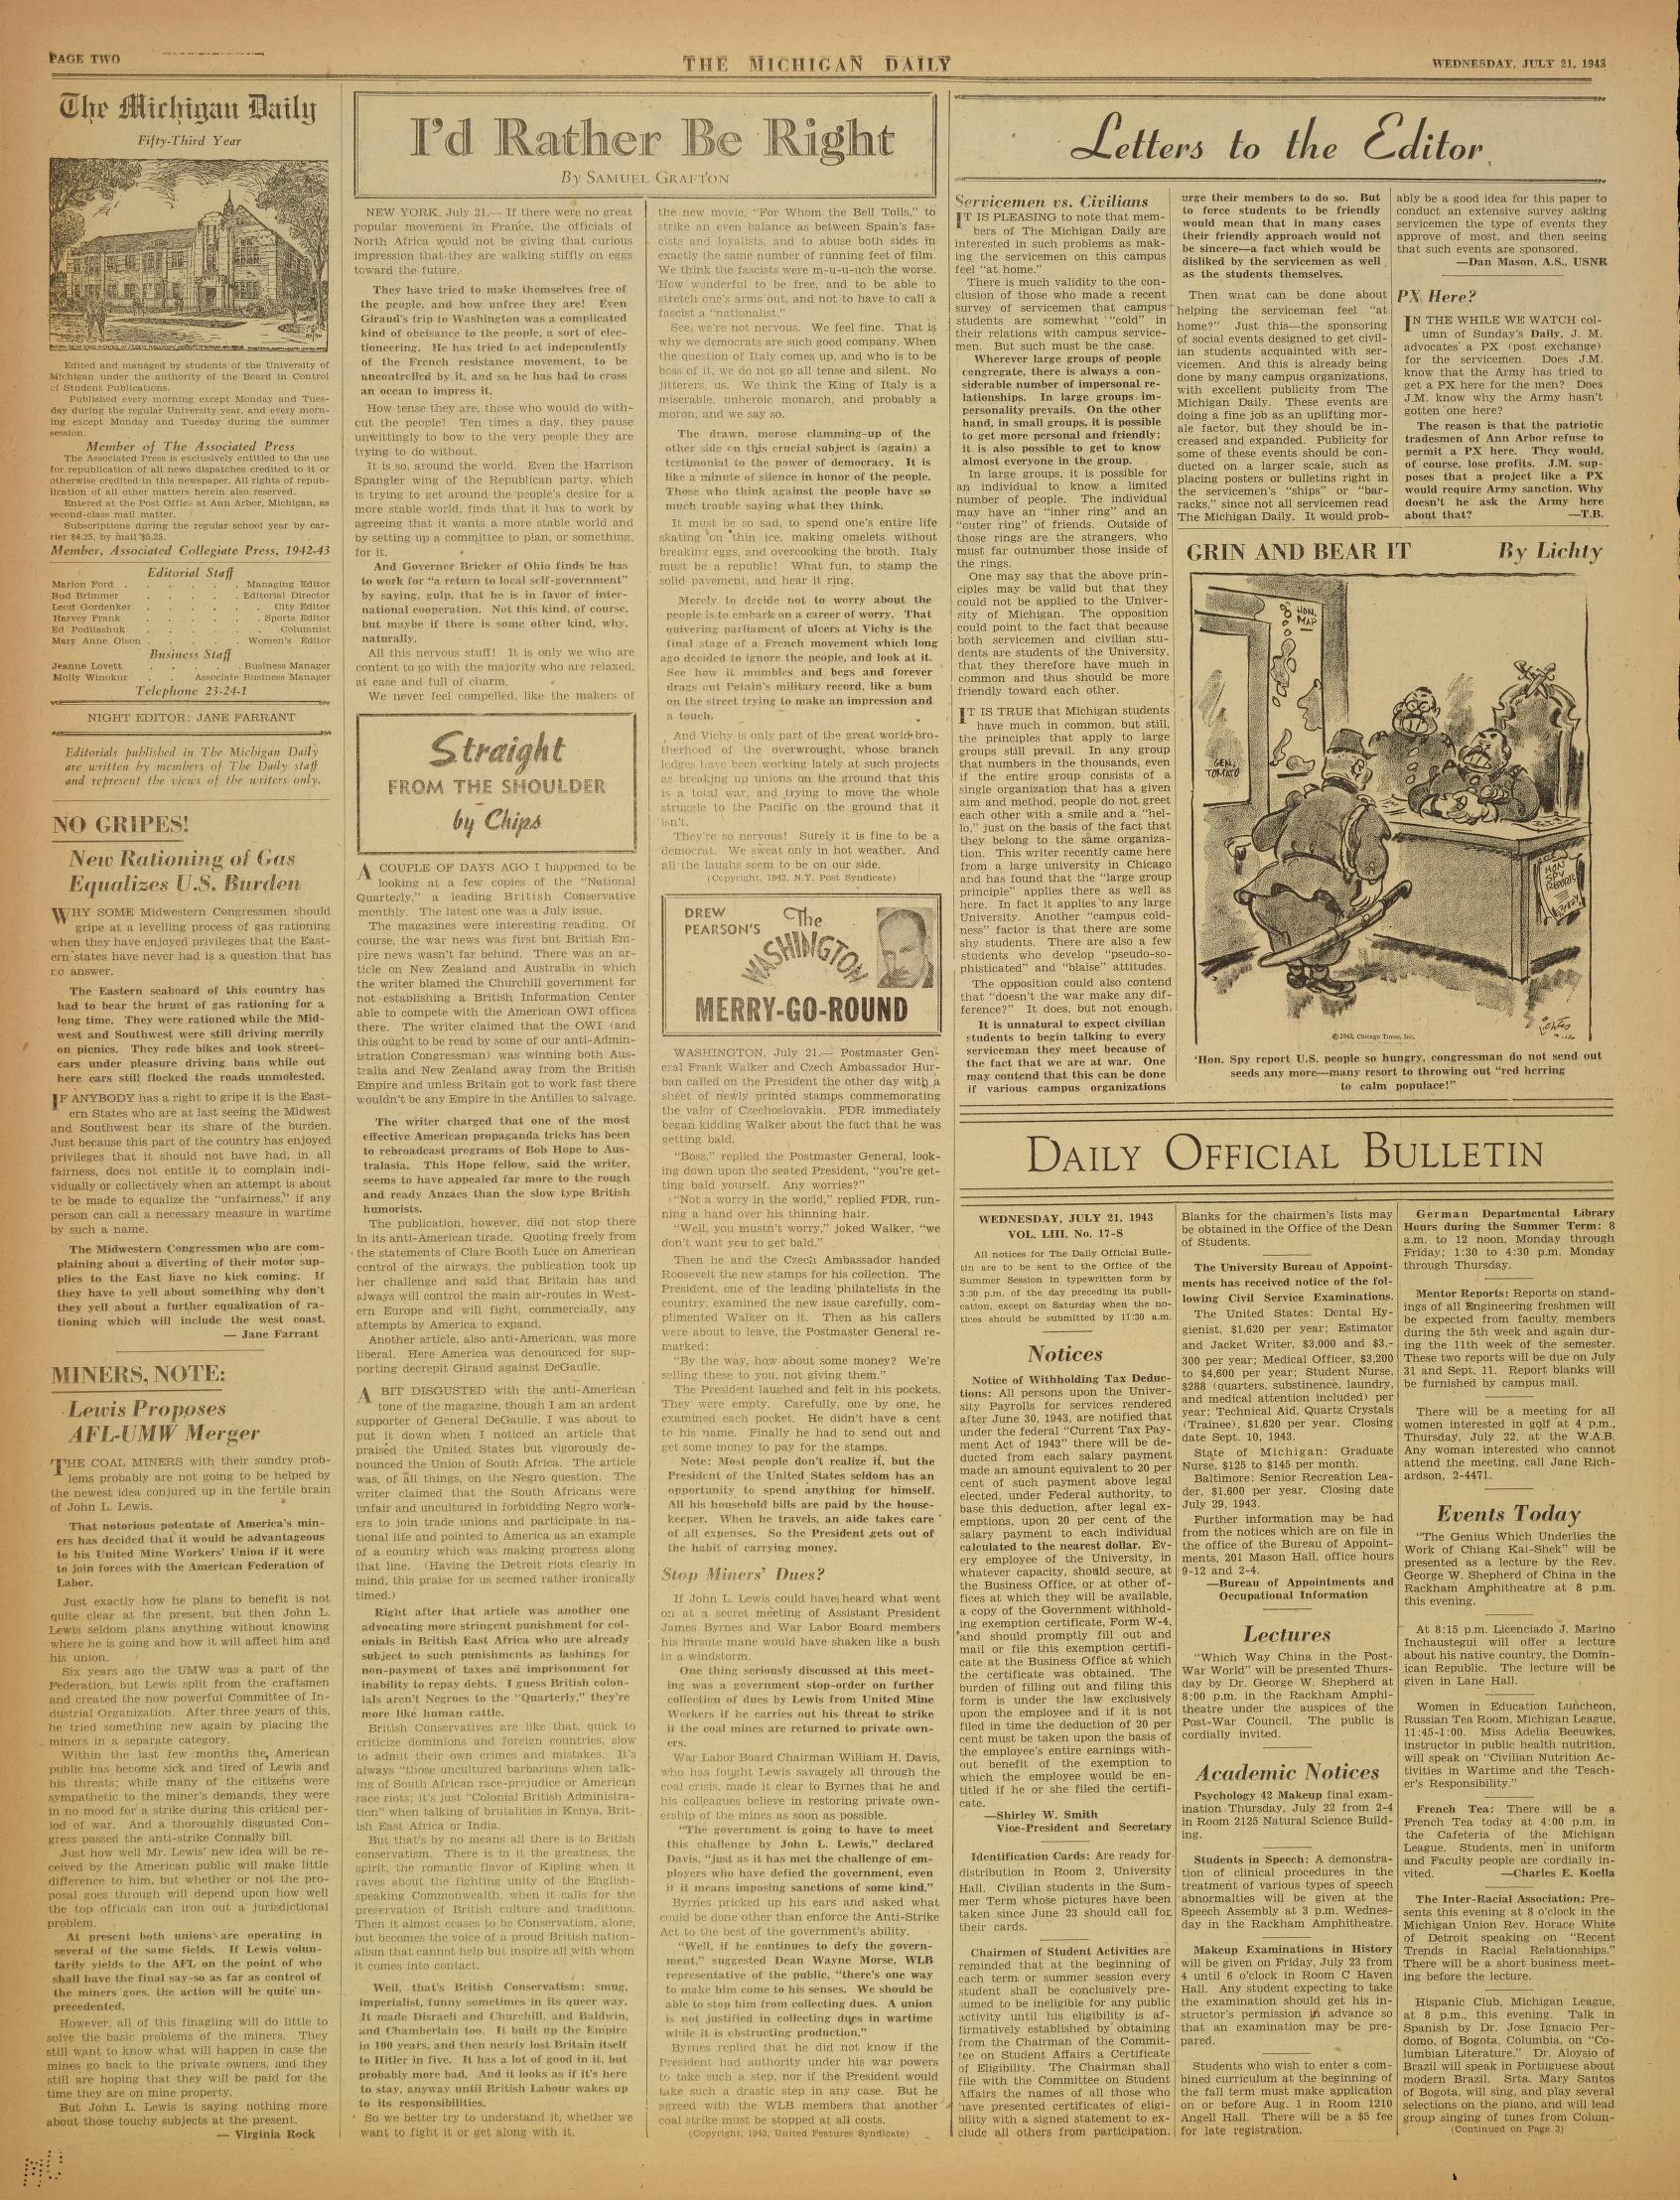 Michigan Daily Digital Archives - July 21, 1943 (vol  53